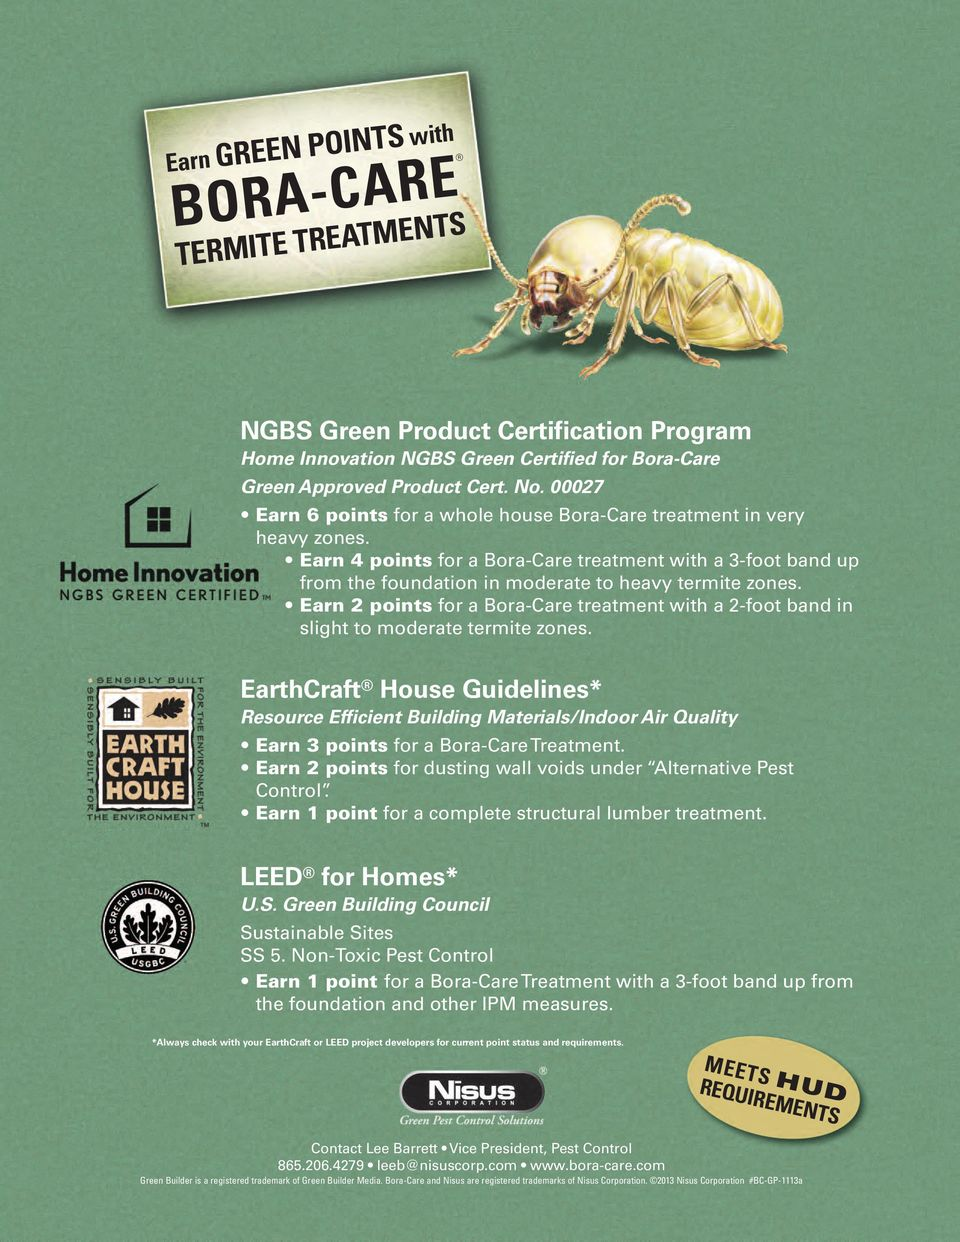 Earn 2 points for a Bora-Care treatment with a 2-foot band in slight to moderate termite zones.